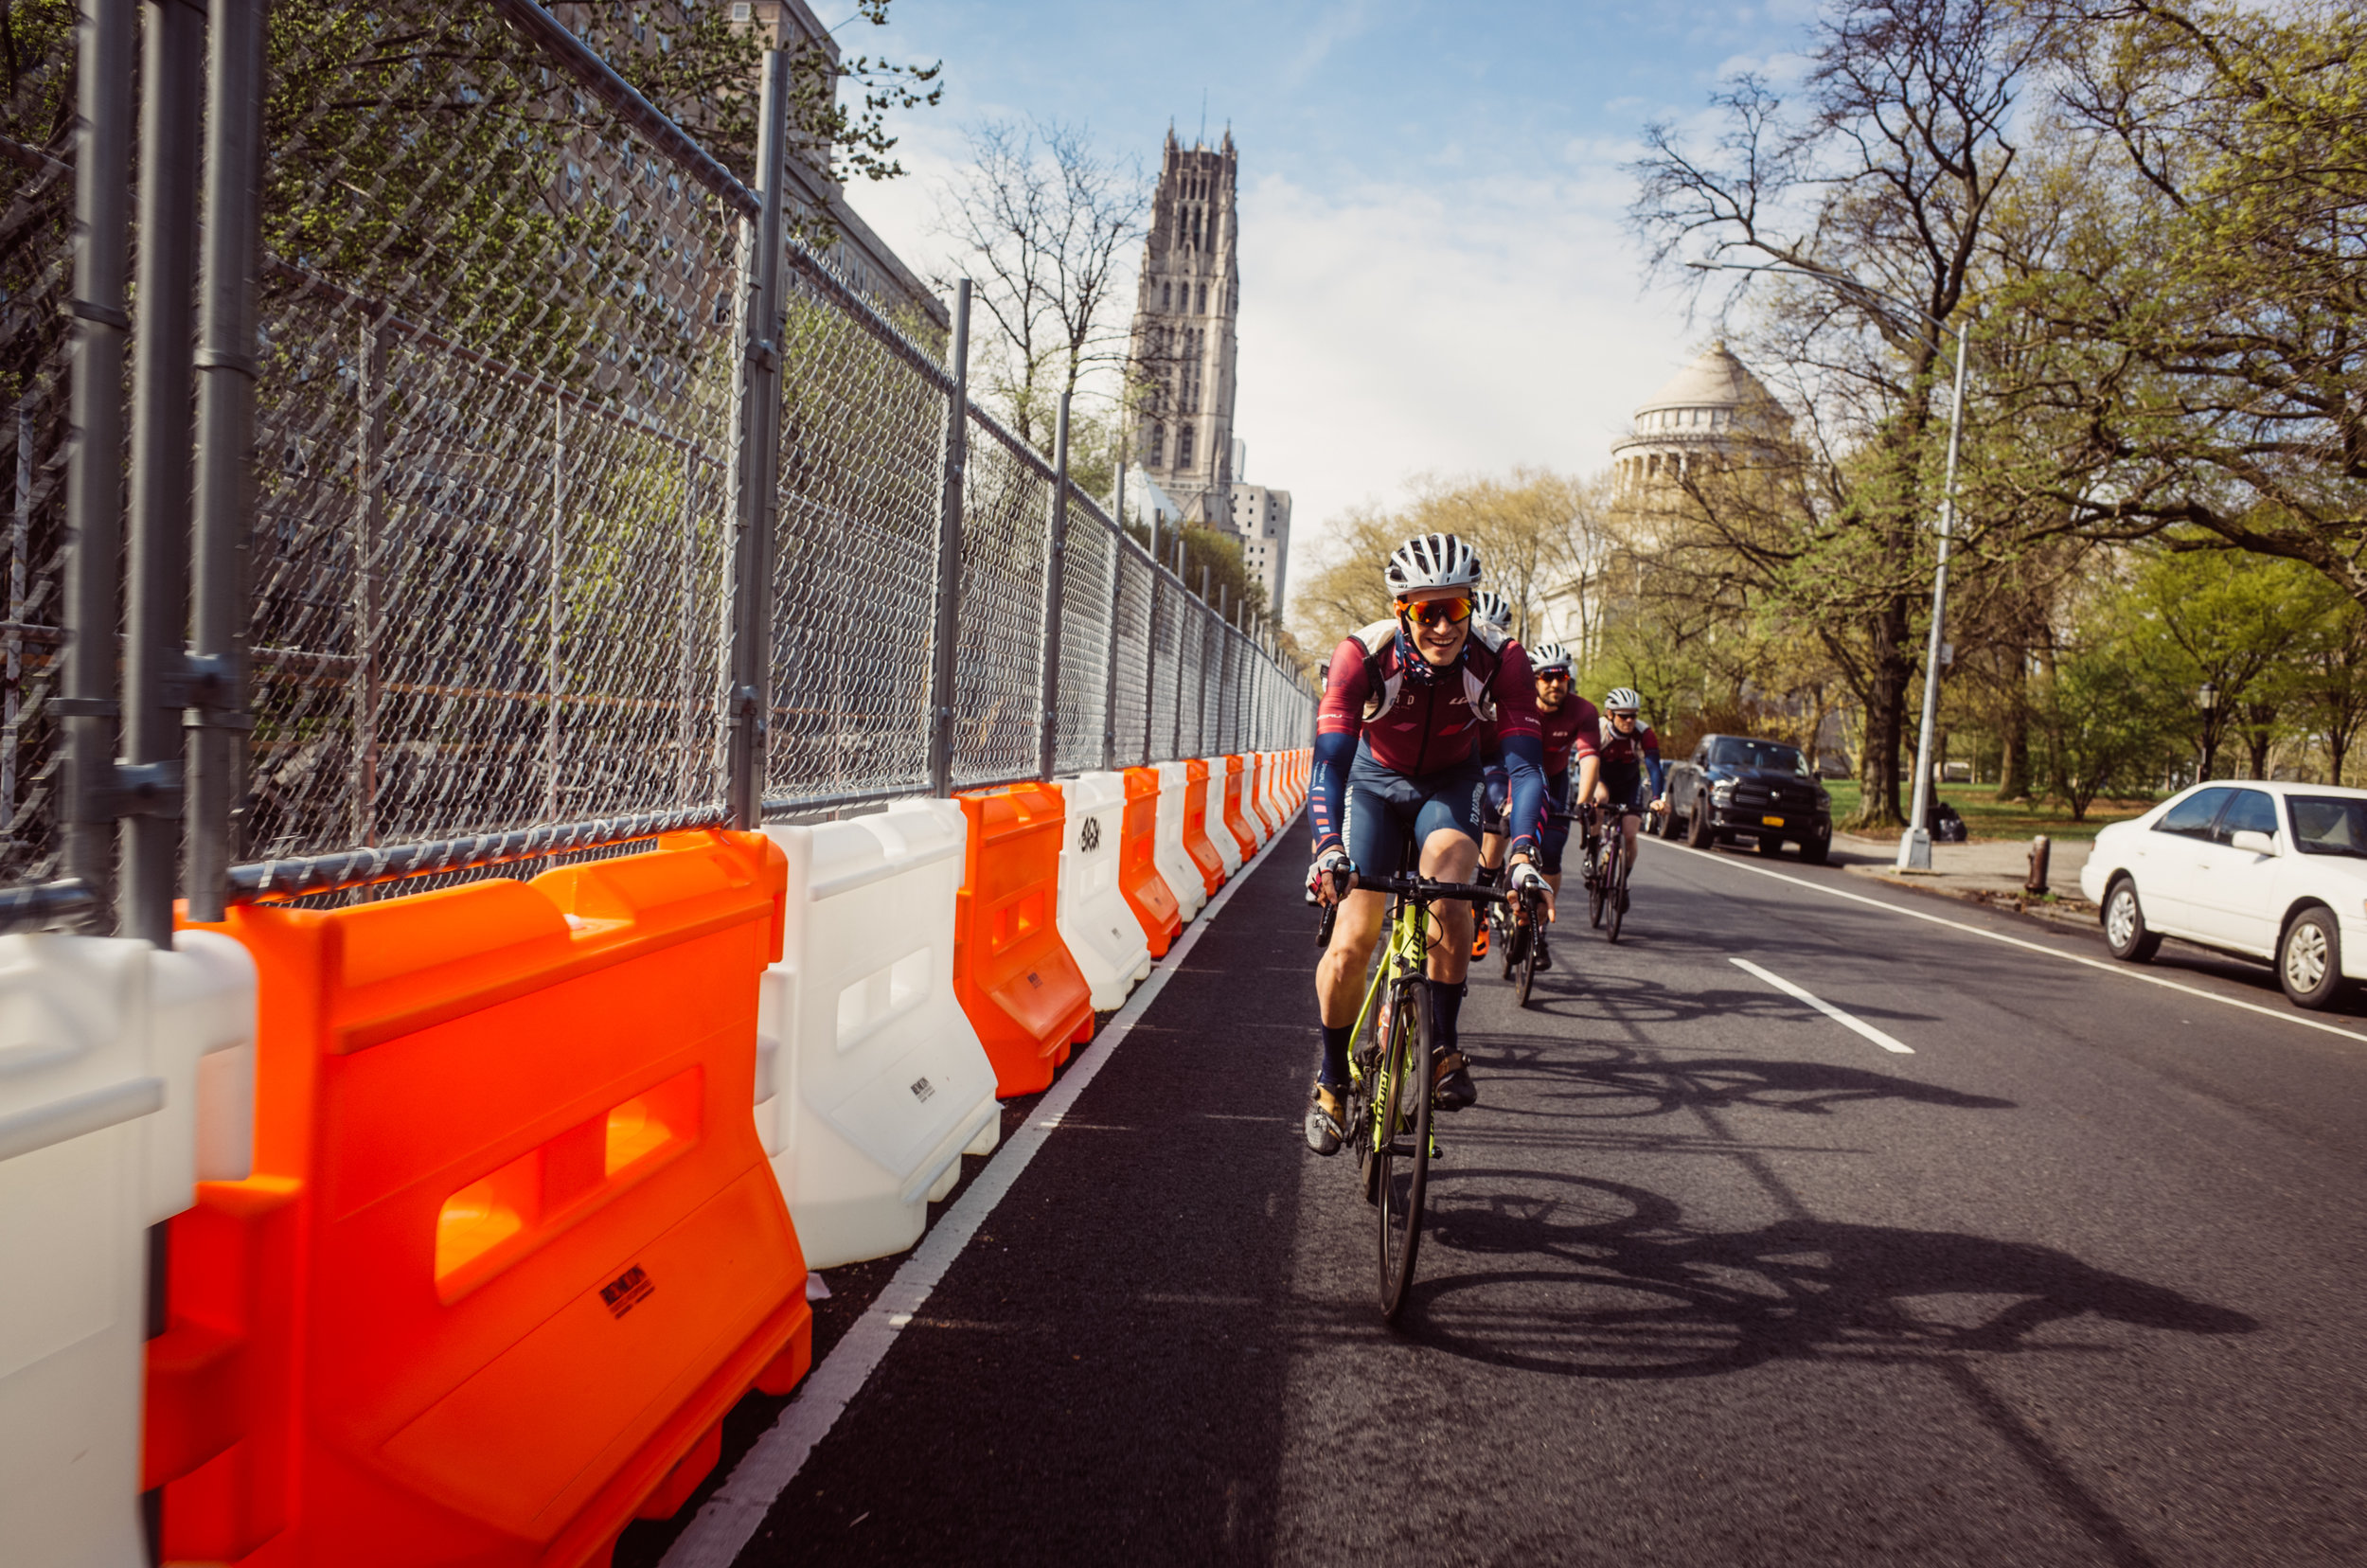 Finally, proper spring riding weather has arrived in New York City which means the team was rolling in big numbers this past Sunday.